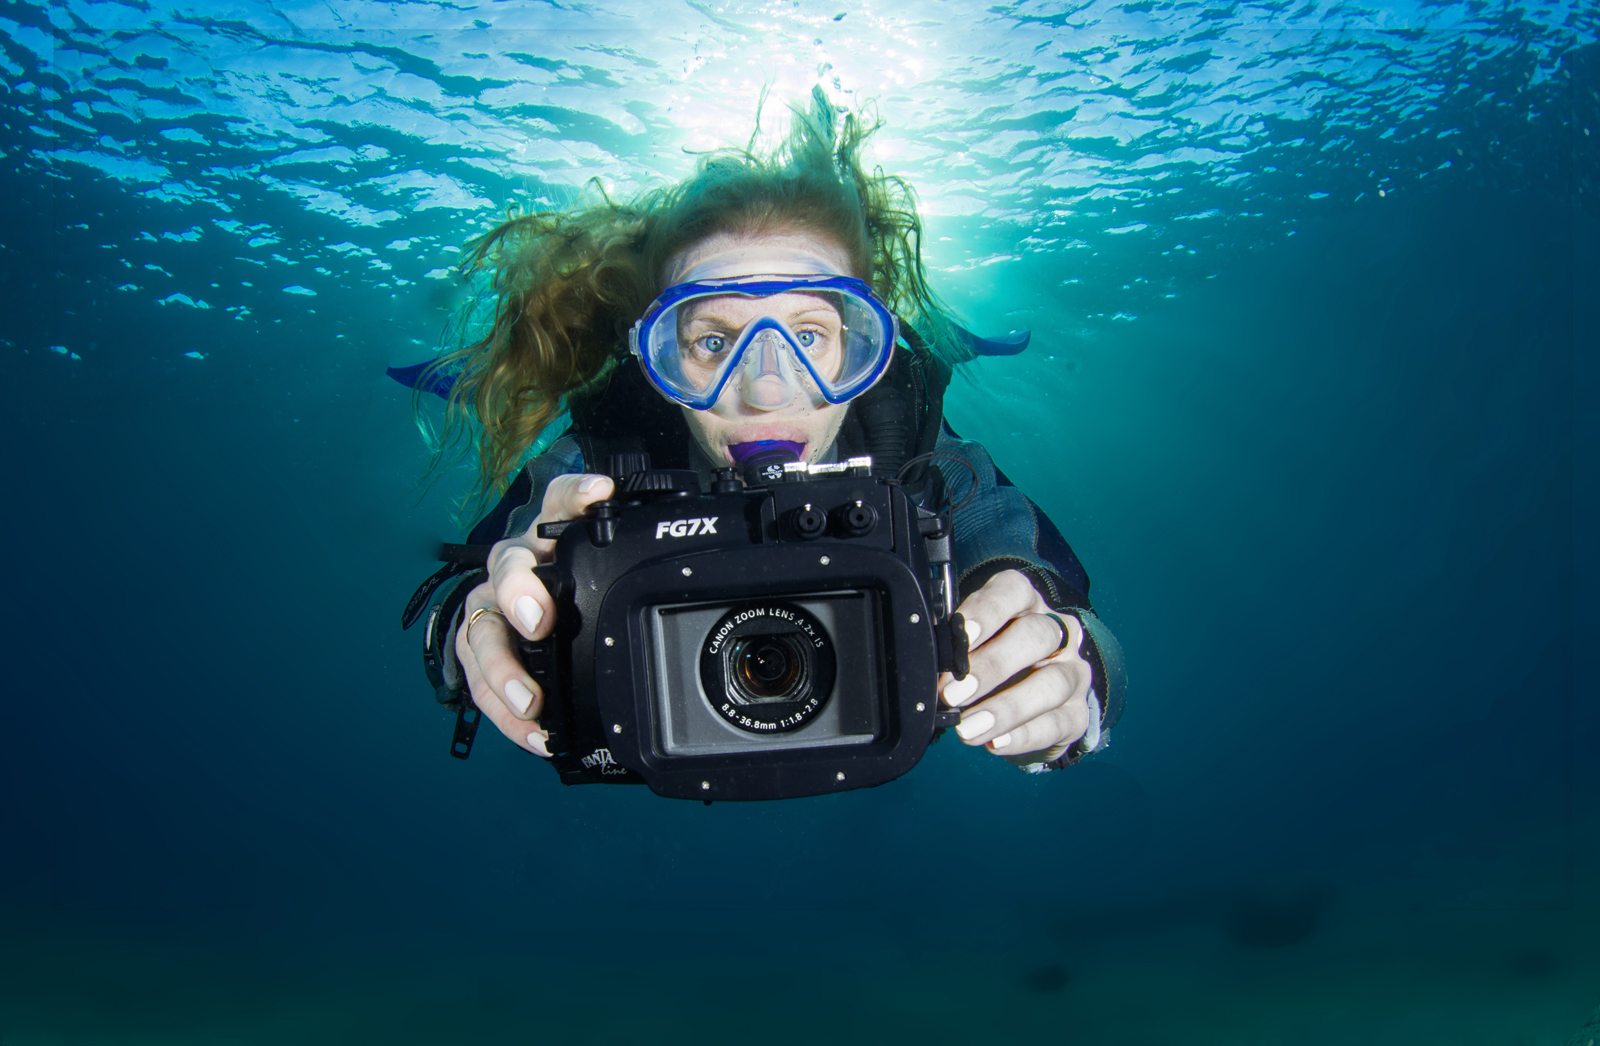 Canon underwater photography guide Underwater Photography Tips for Beginners Canon Australia